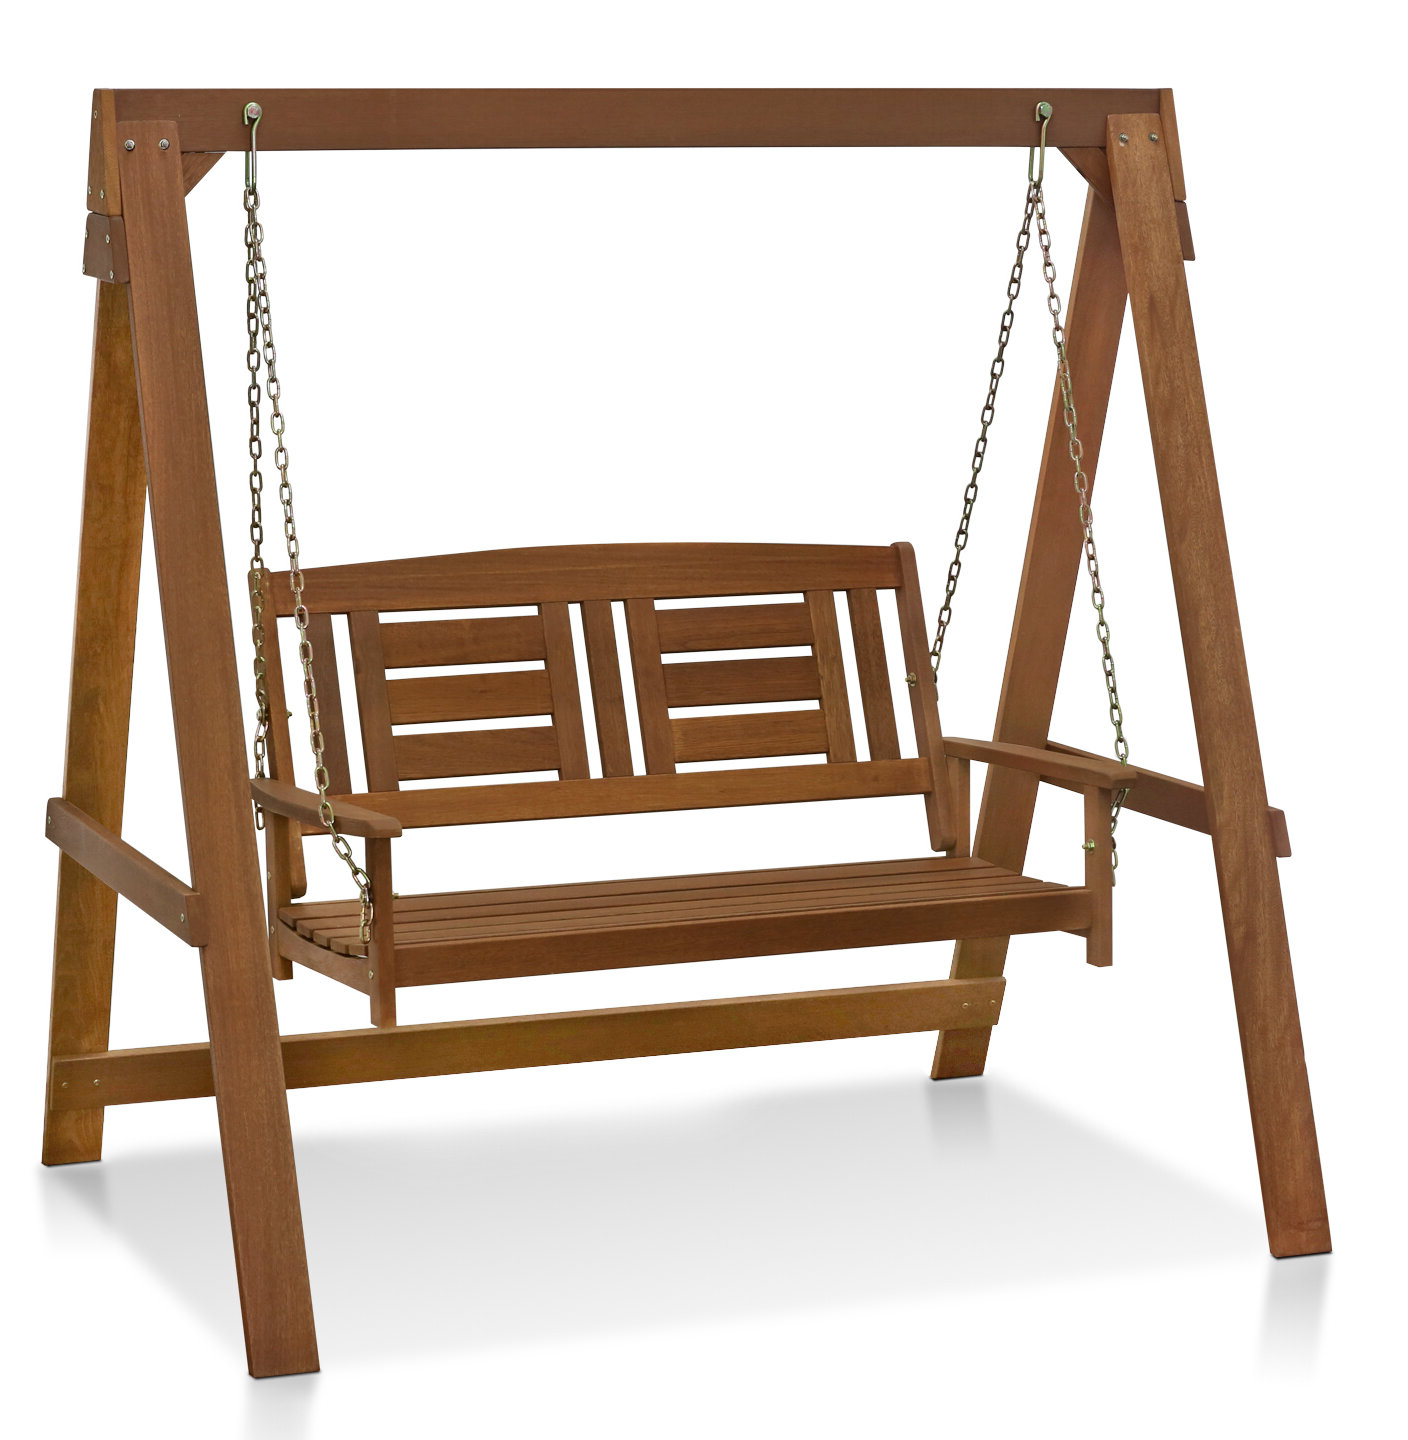 Porch Swings With Stand For Best And Newest Arianna Hardwood Hanging Porch Swing With Stand (Gallery 17 of 25)